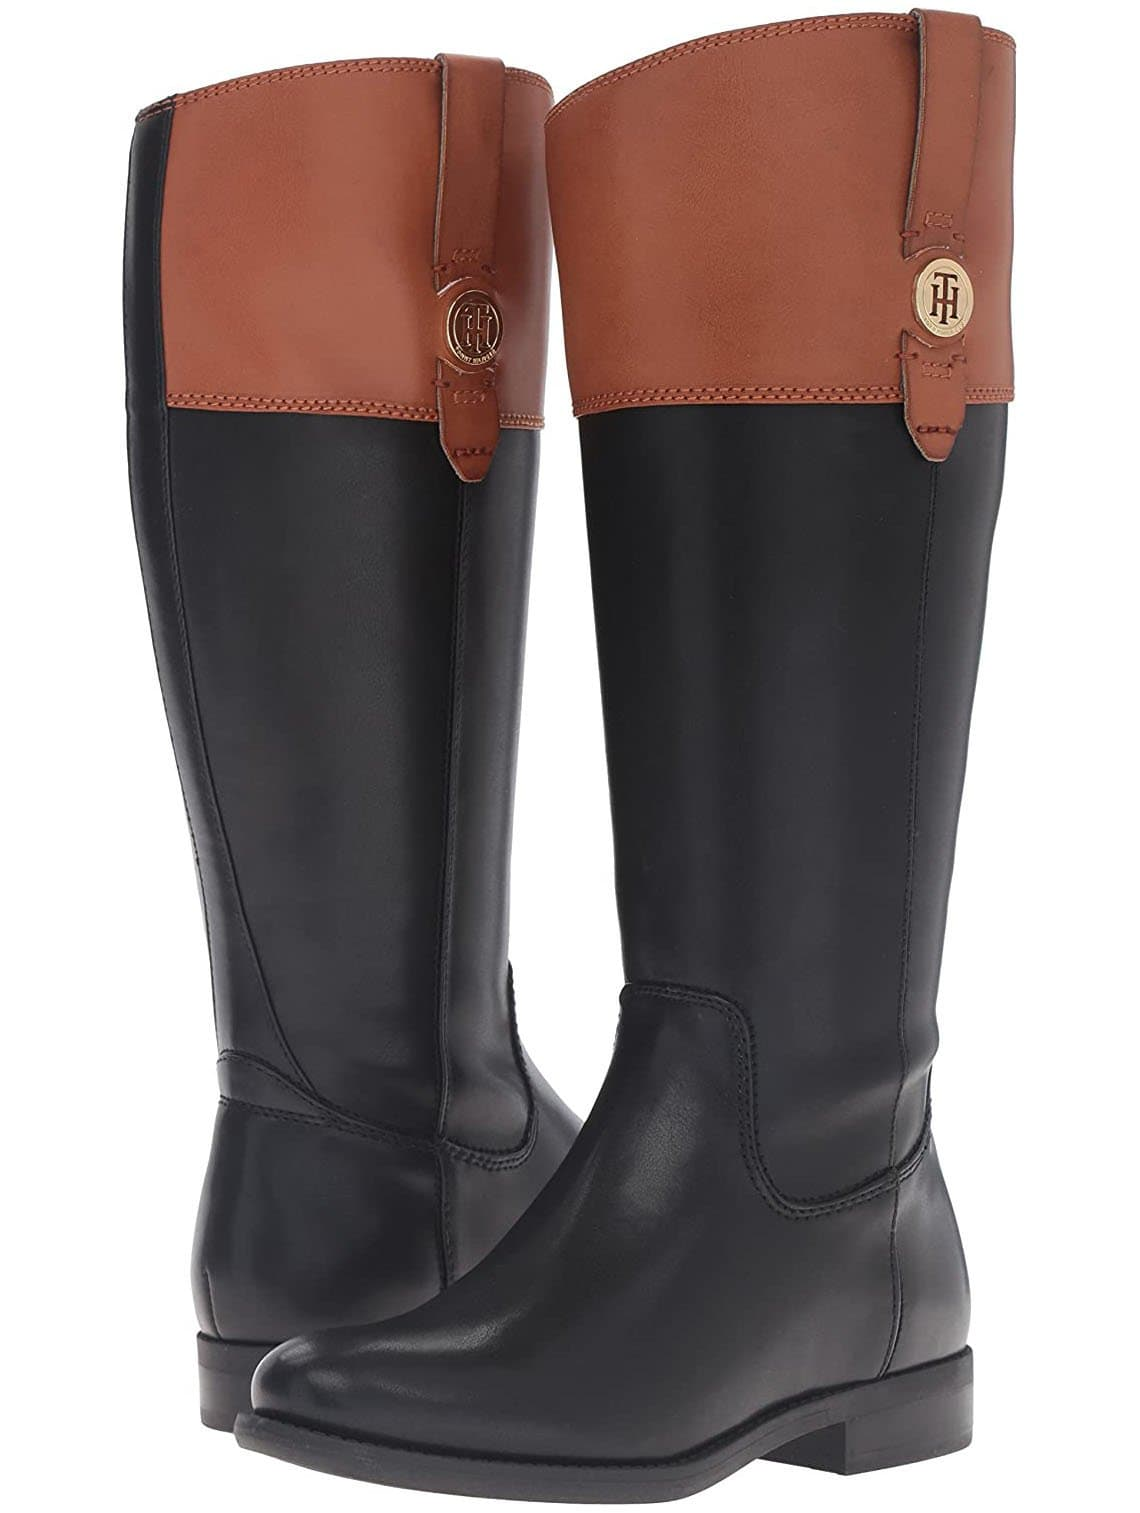 A classic pair of Tommy Hilfiger riding boots that feature the label's gold logo medallion at the sides